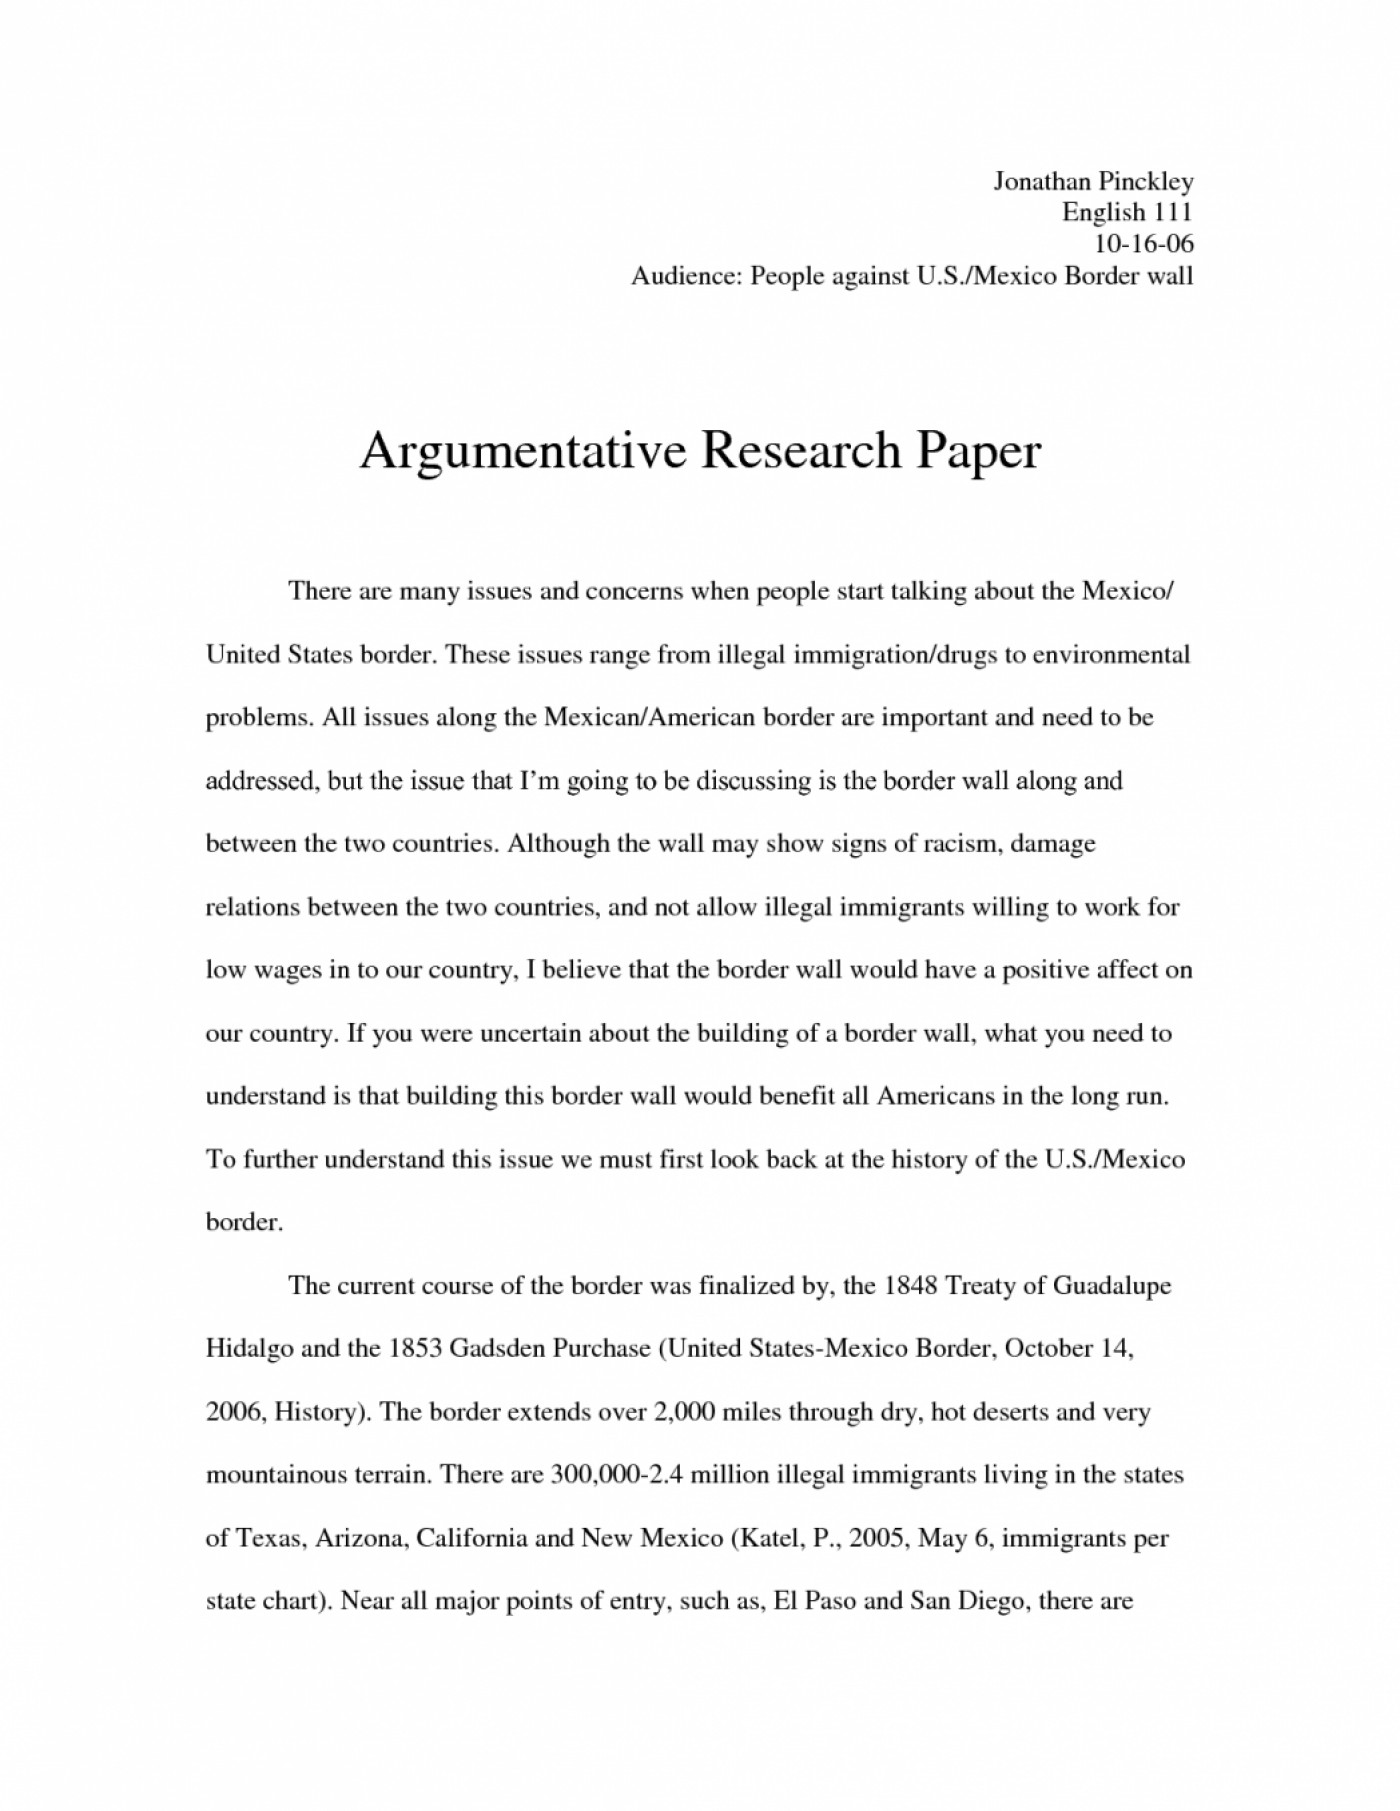 illegal immigrants essay on college papers against immigration    argumentative essay on illegal immigration argument research  against pgune thesis outline topics pro x striking